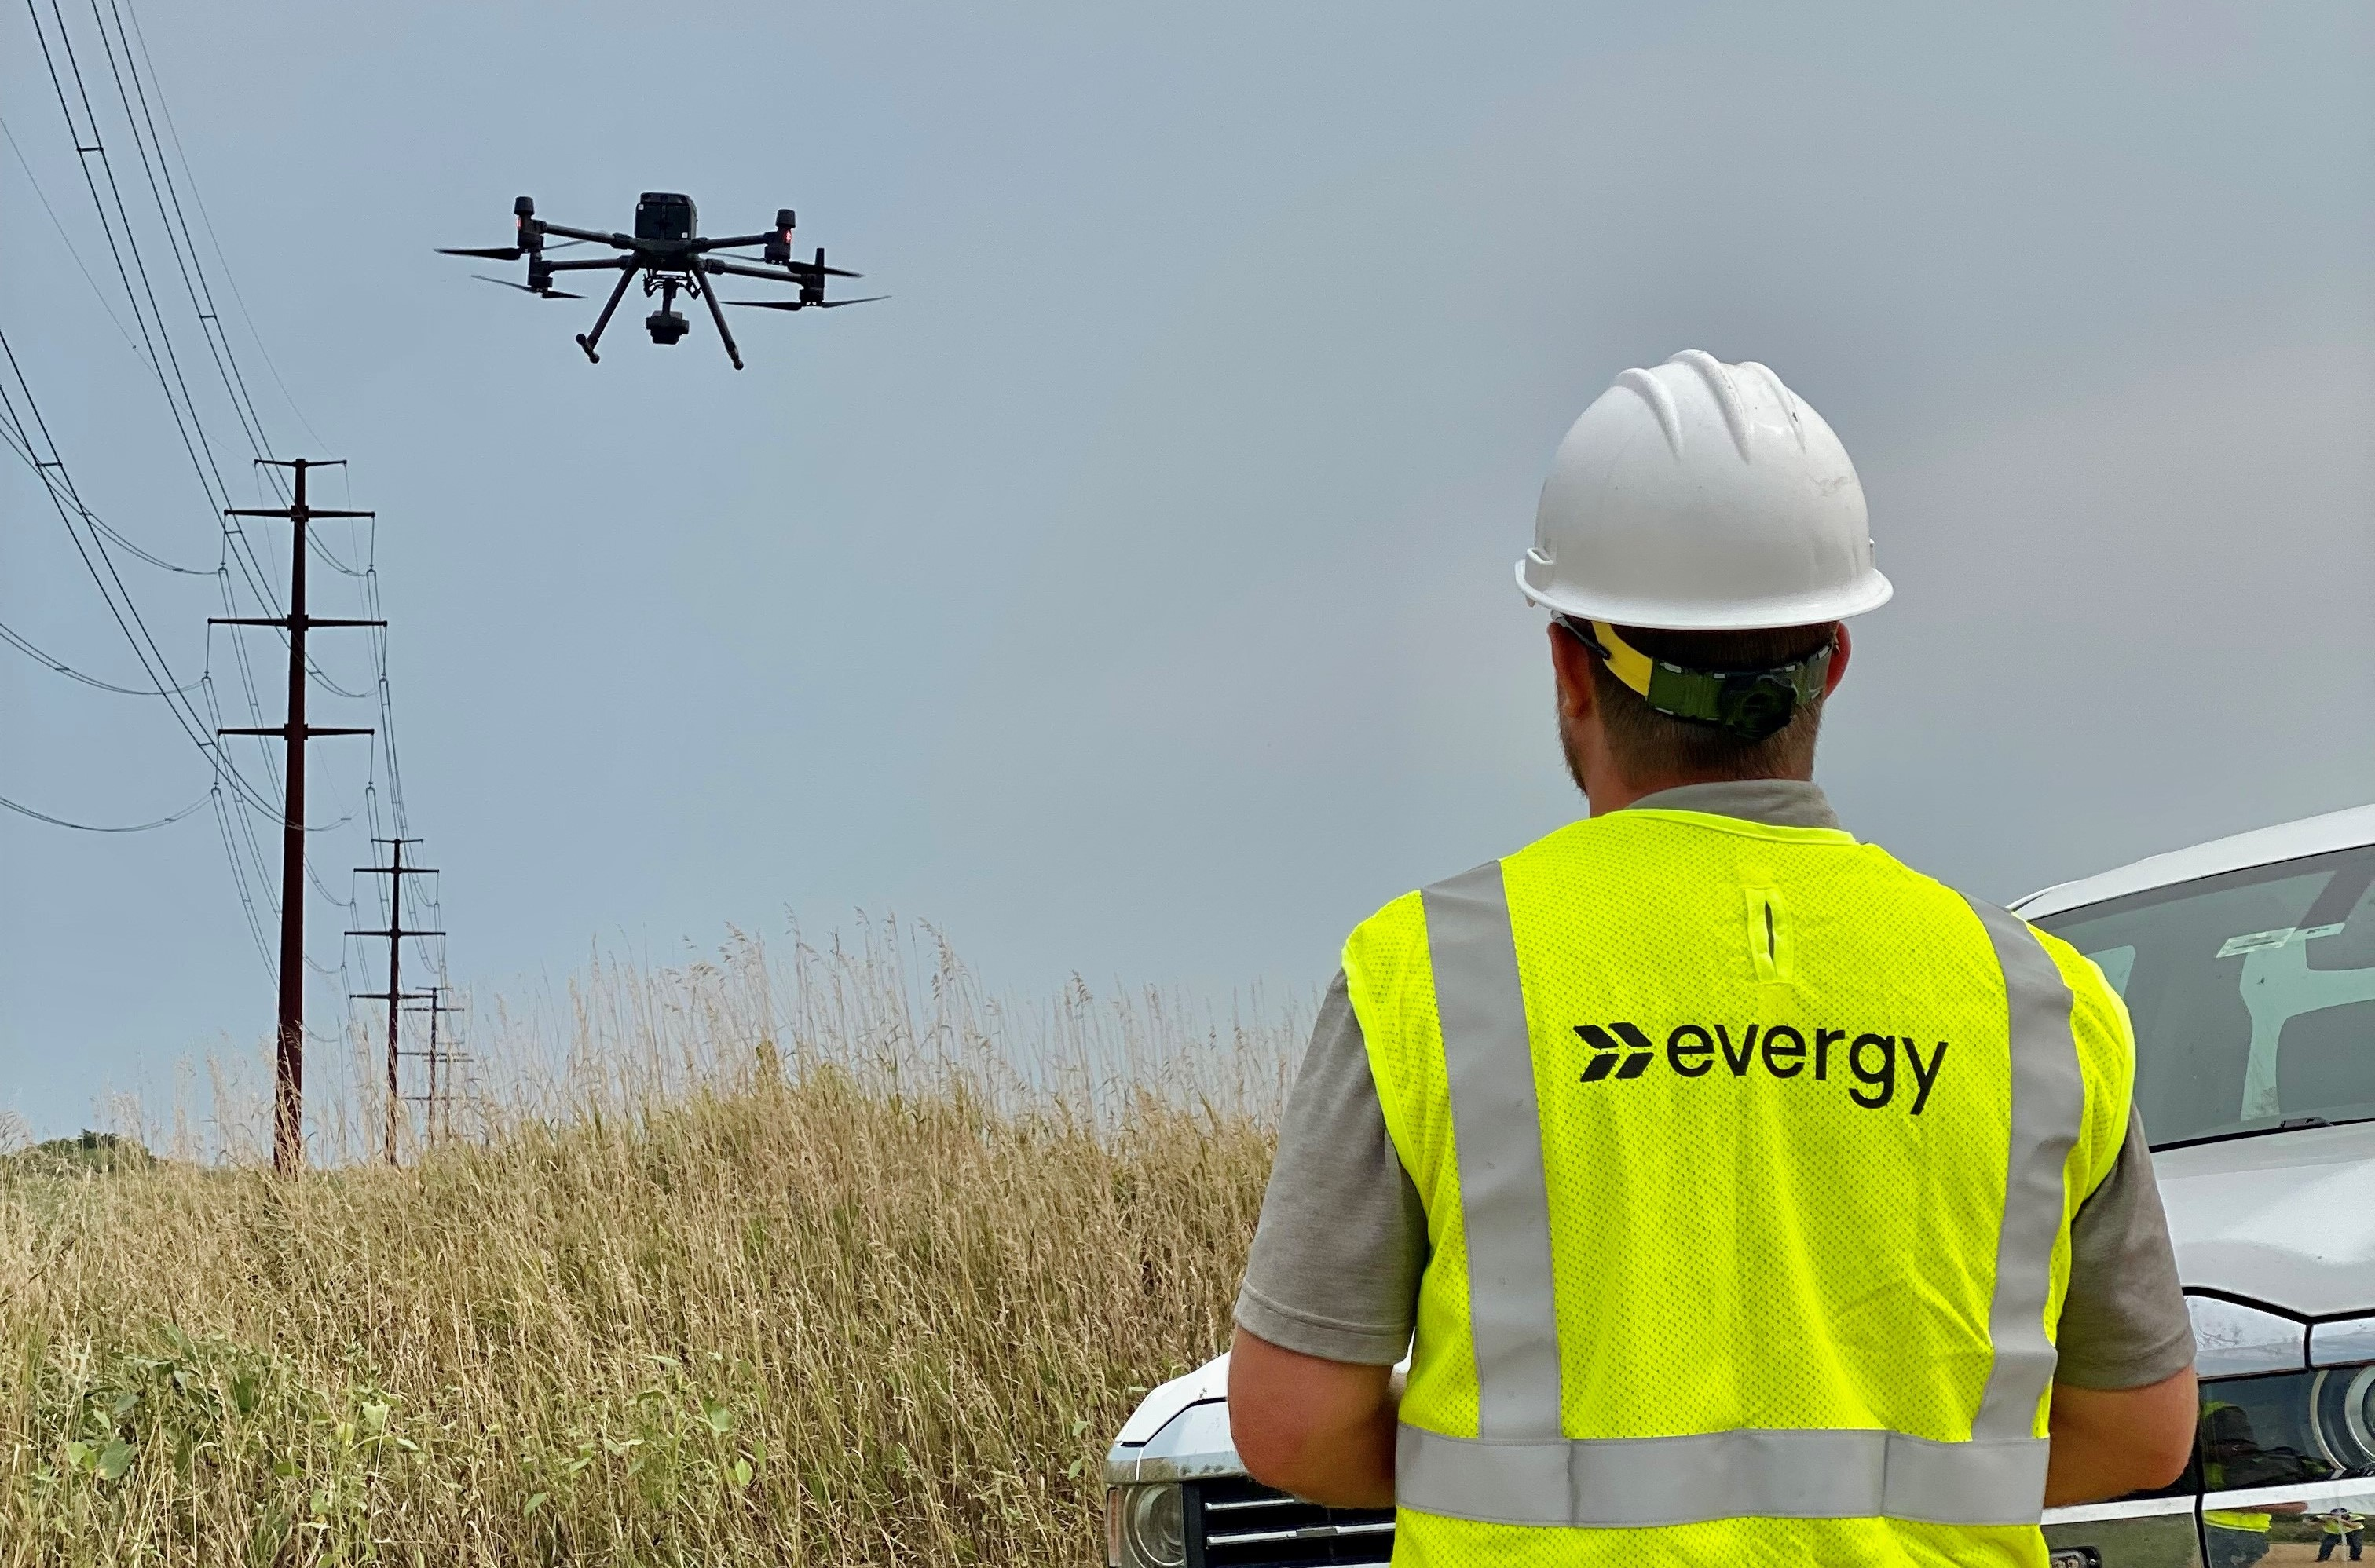 How Evergy Increased Safety and Reliability with Measure Ground Control